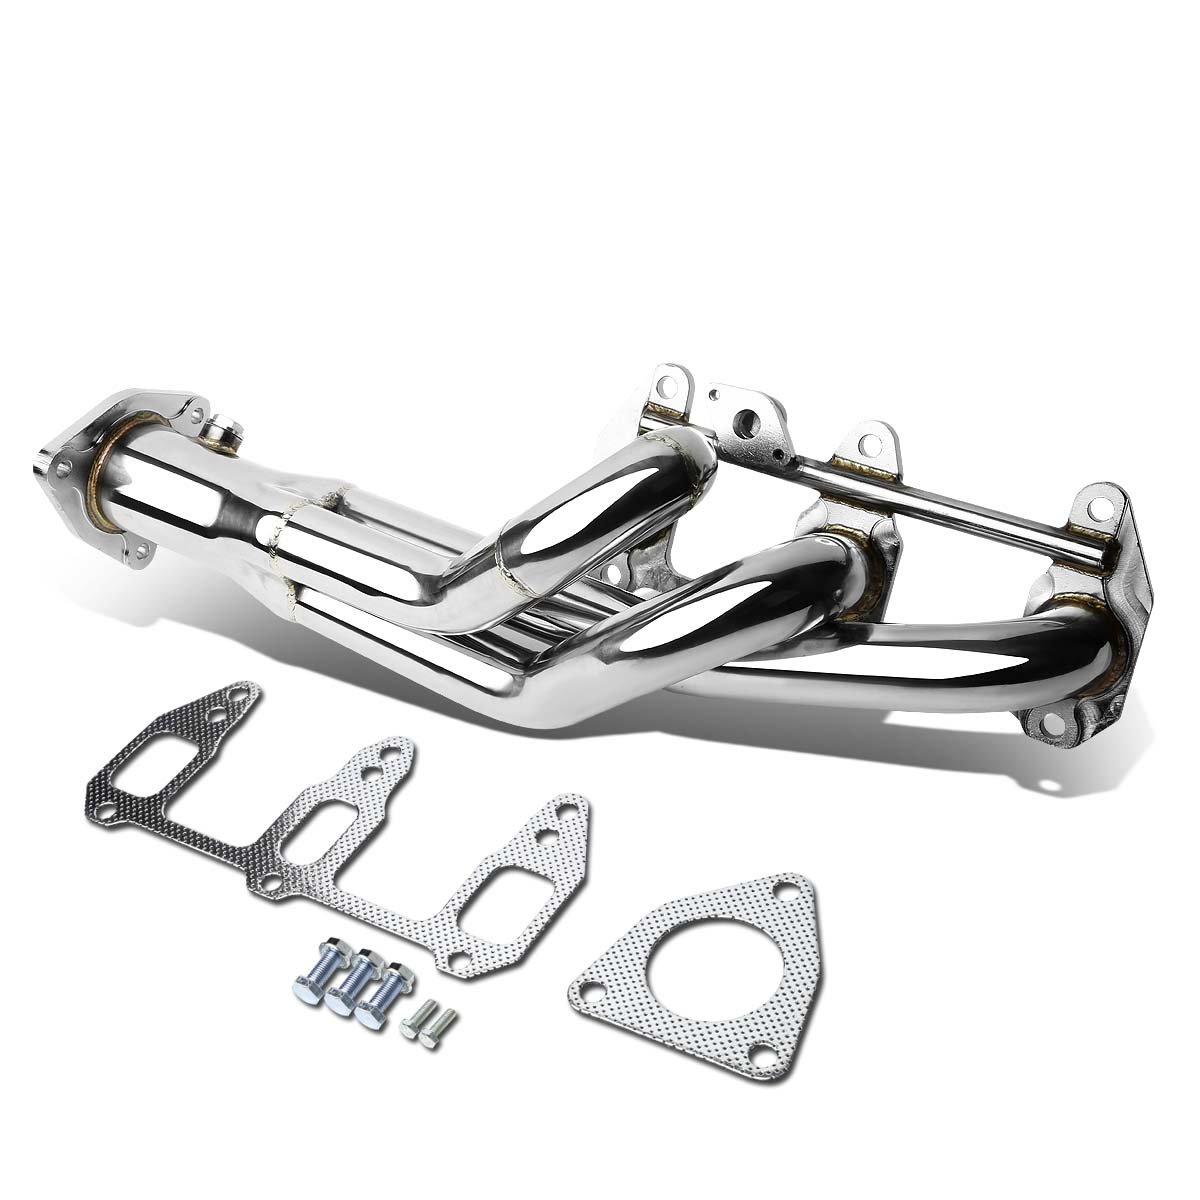 Stainless Steel Header Manifold Exhaust Fits Mazda RX-8 04-11 SSH-MRX803